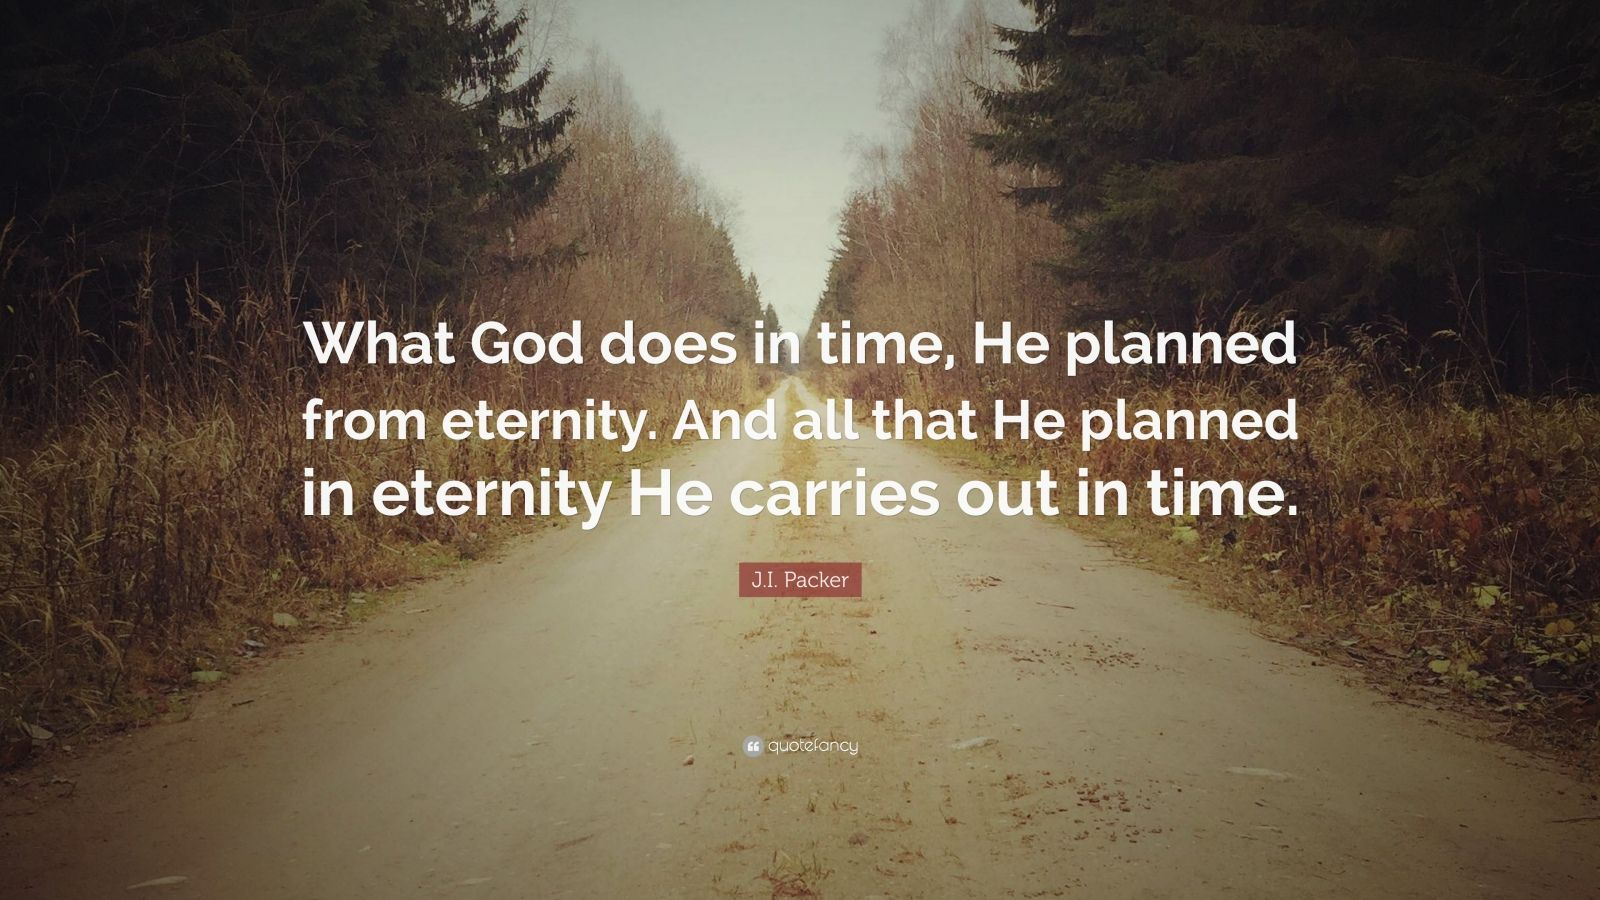 """J.I. Packer Quote: """"What God does in time, He planned from eternity. And all that He planned in eternity He carries out in time."""""""